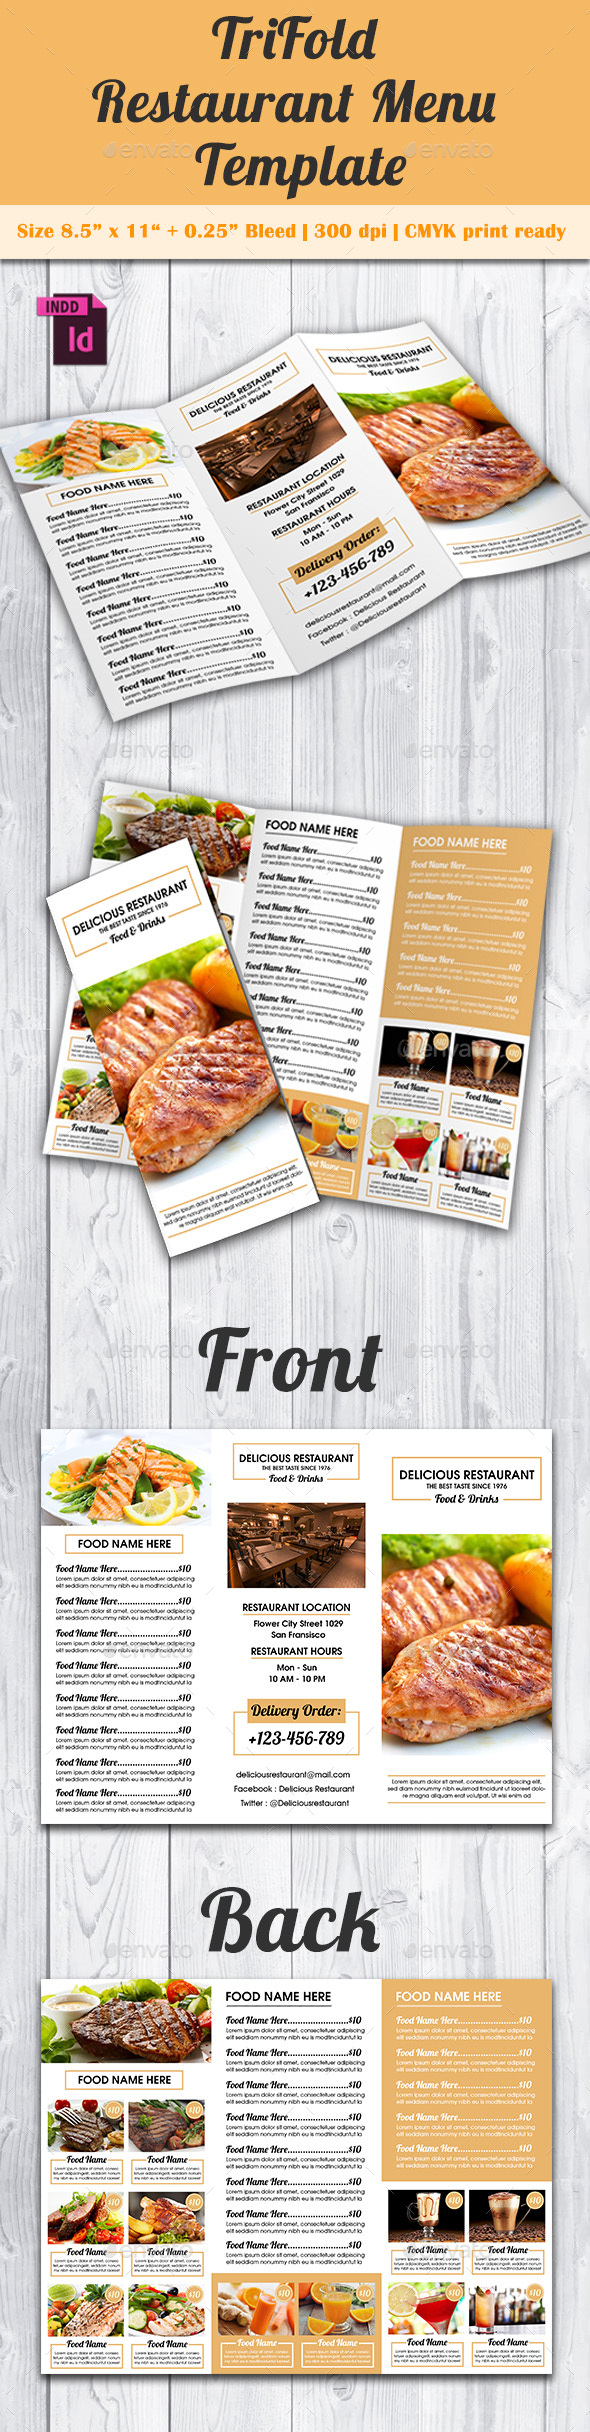 TriFold Restaurant Menu Template Vol By Avindaputri GraphicRiver - Delivery menu template